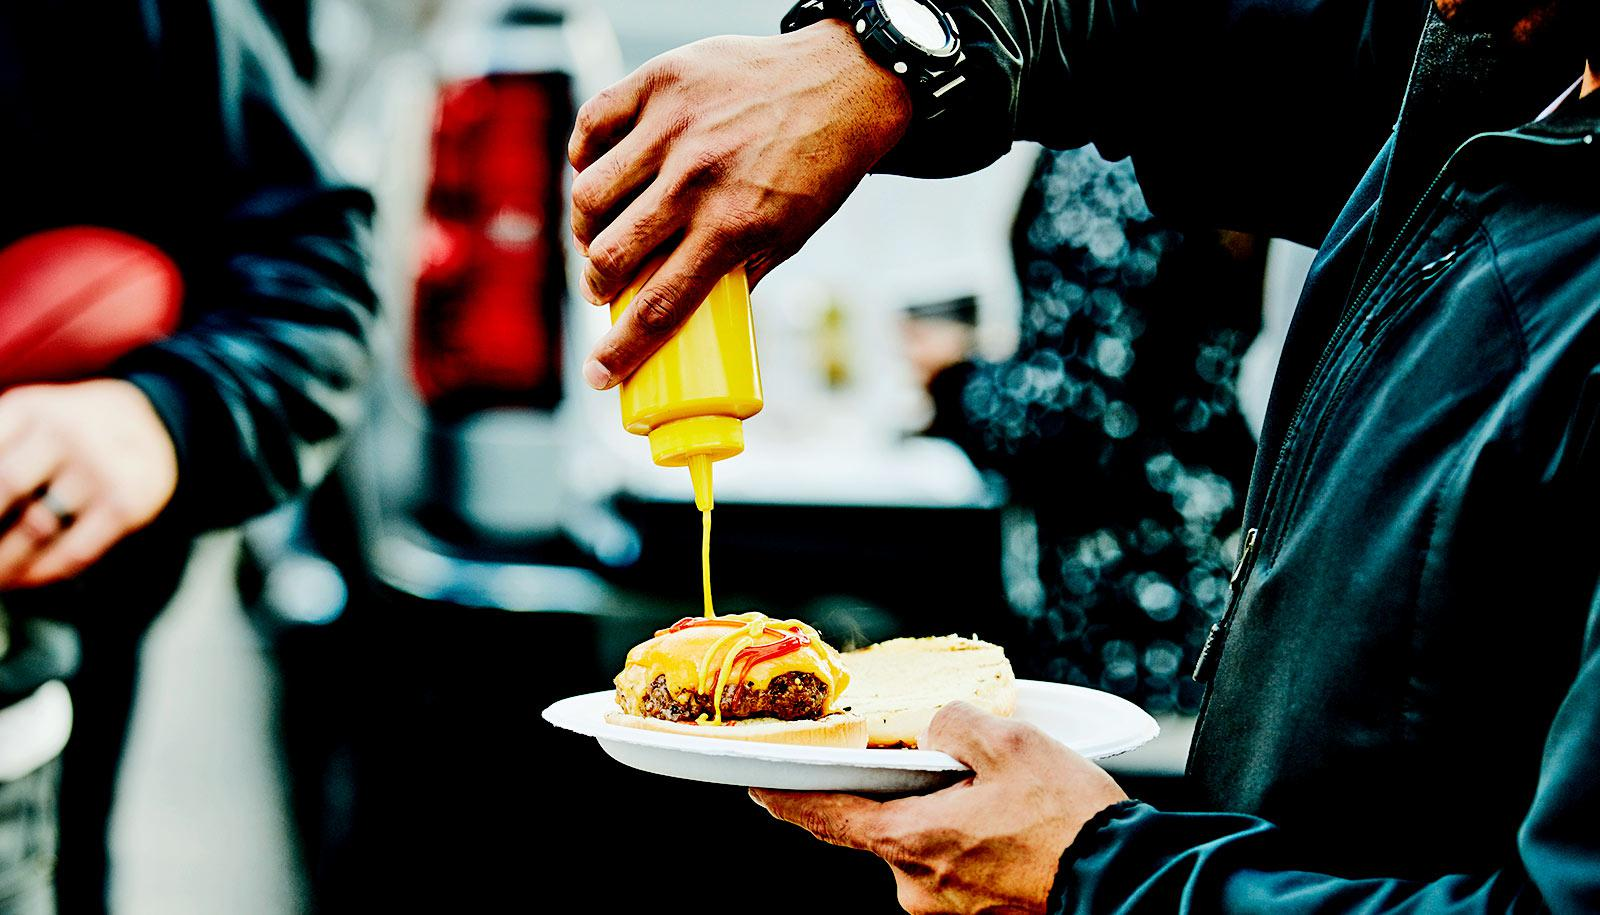 A man squeezes mustard onto a burger while tailgating